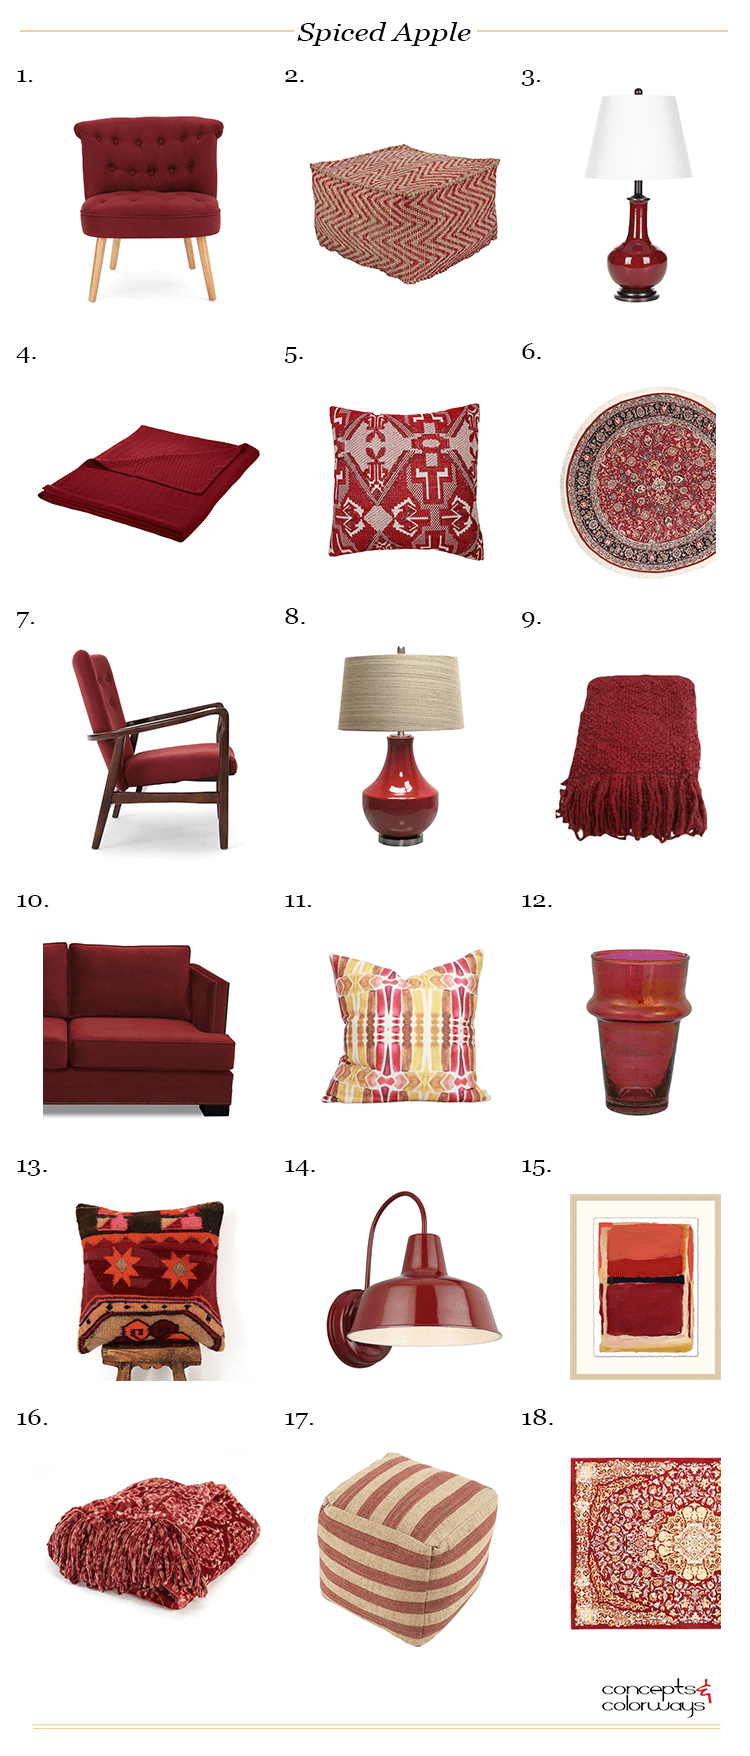 pantone spiced apple, apple red, reddish brown, brown red, dark red, red decor, red vintage rug, russet red, burgundy decor, burgundy, dark red pouf, dark red chair, dark red lamp, dark red rug, dark red pillow, dark red throw blanket